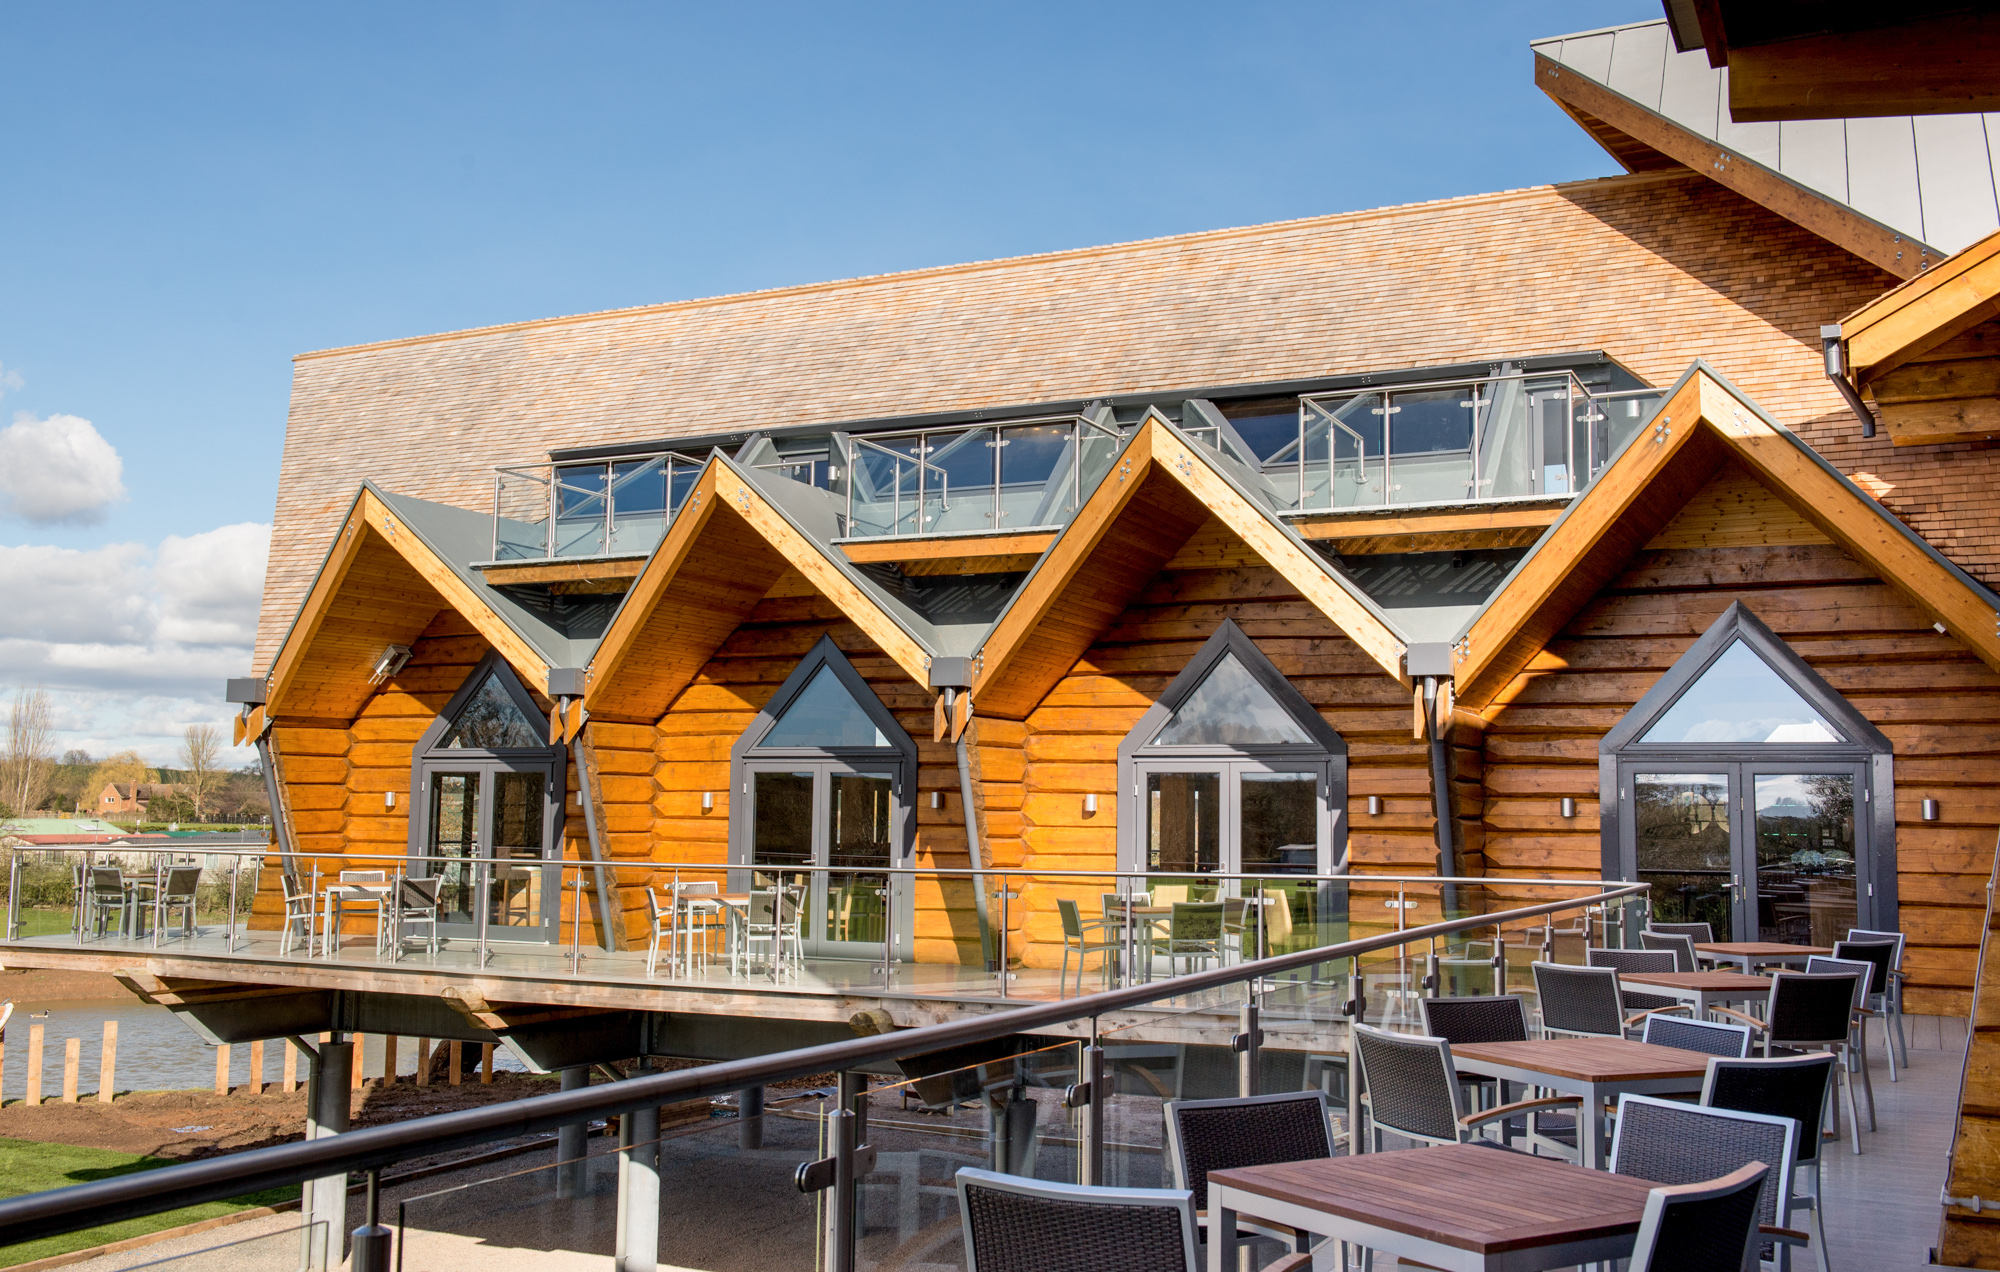 Riverside Clubhouse by Emission Zero architects, Richard Stonehouse architectural photographer.